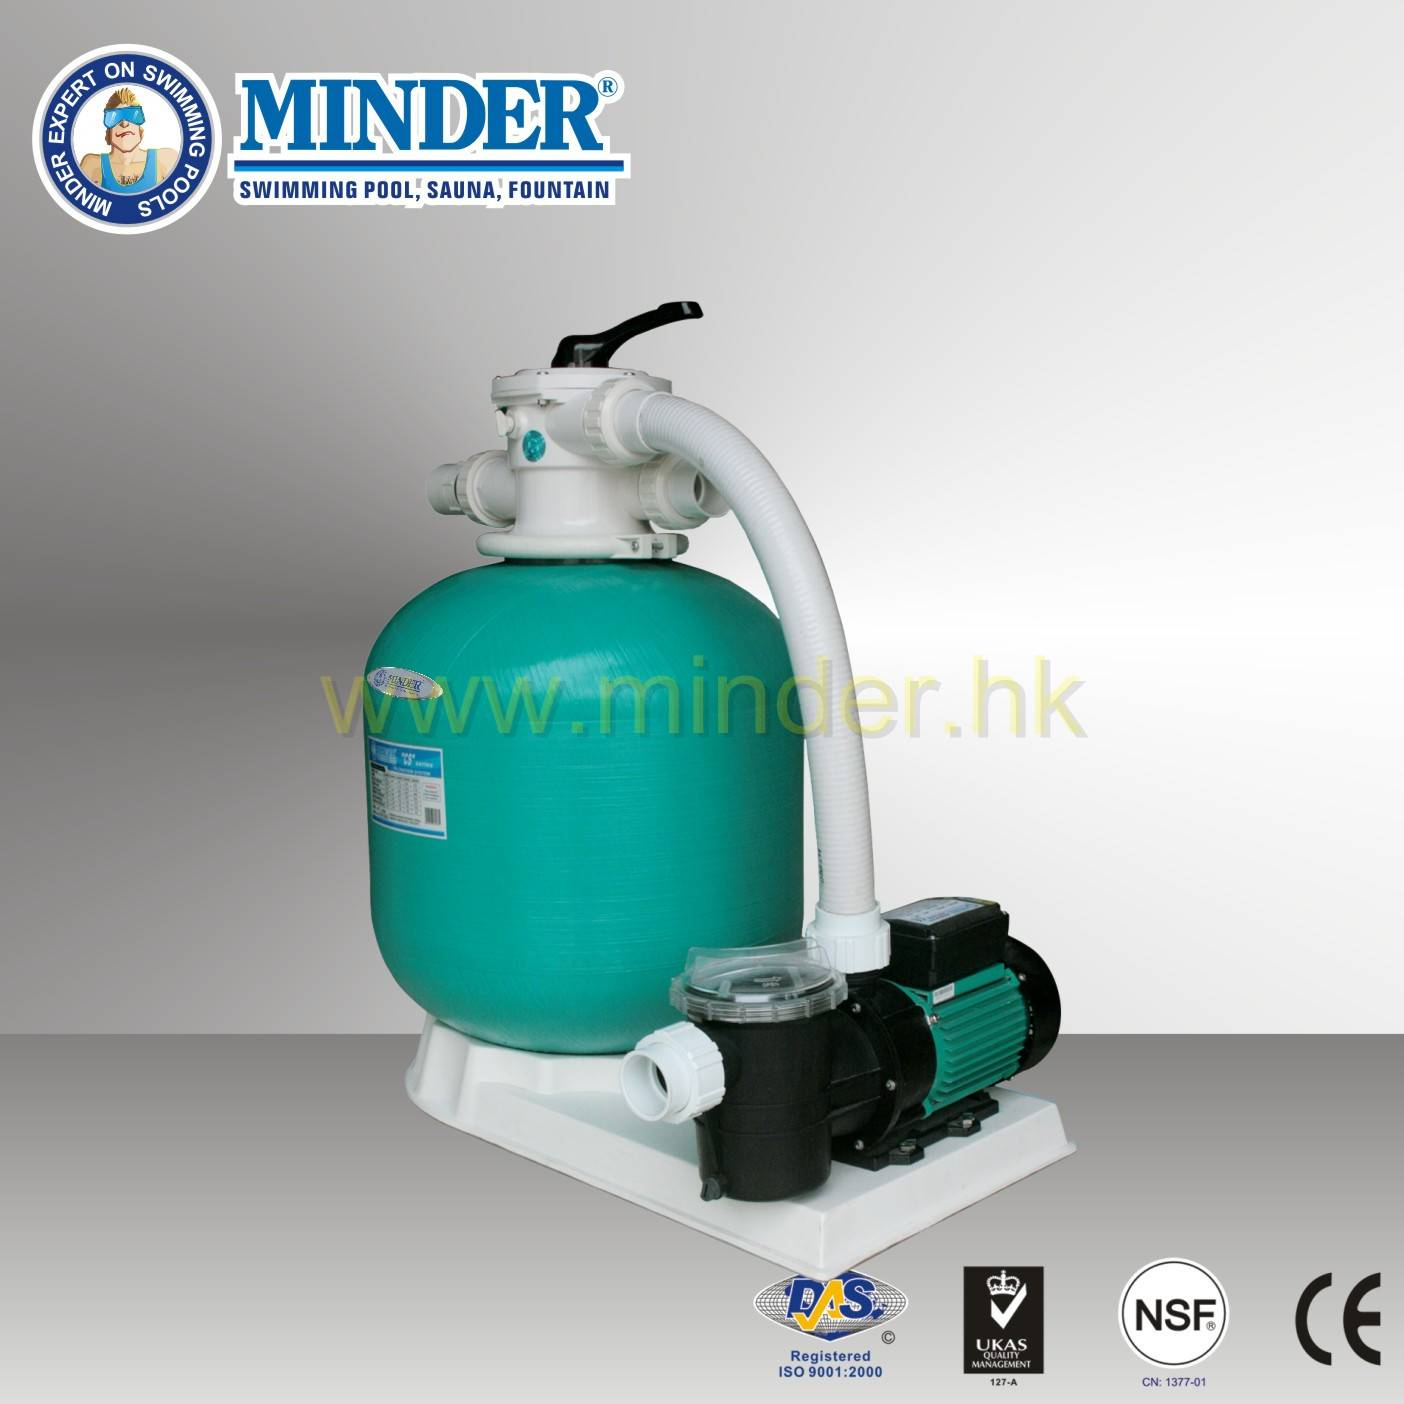 Firberglass 1.5 inch Valve Swimming Pool Sand Filter filteration system